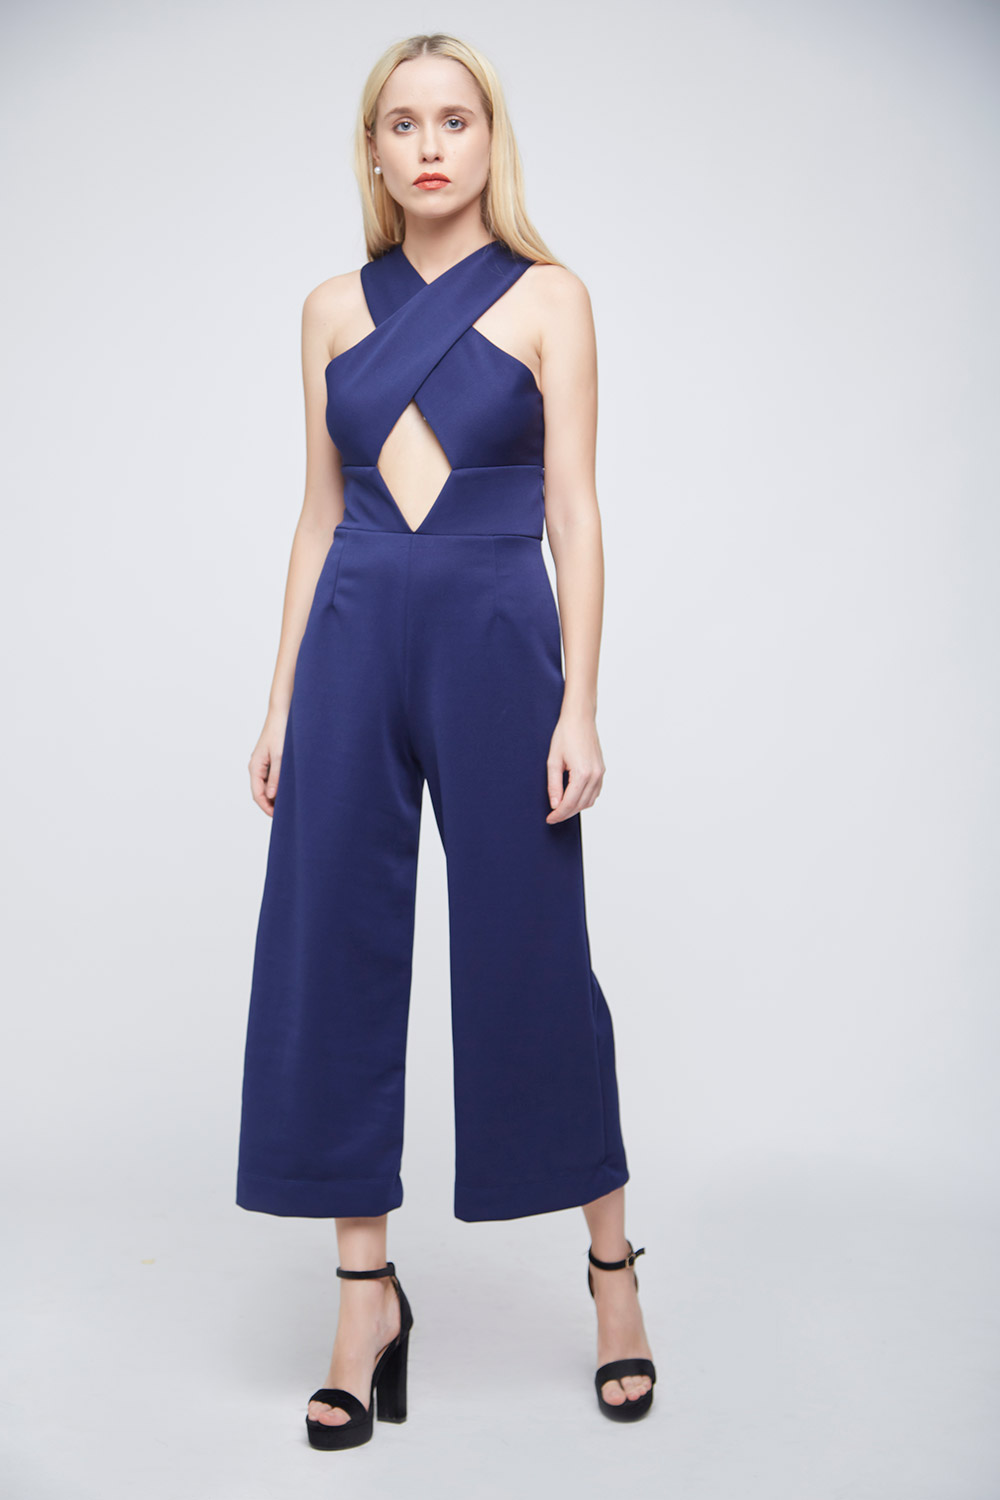 Axis Blue Jumpsuit -1